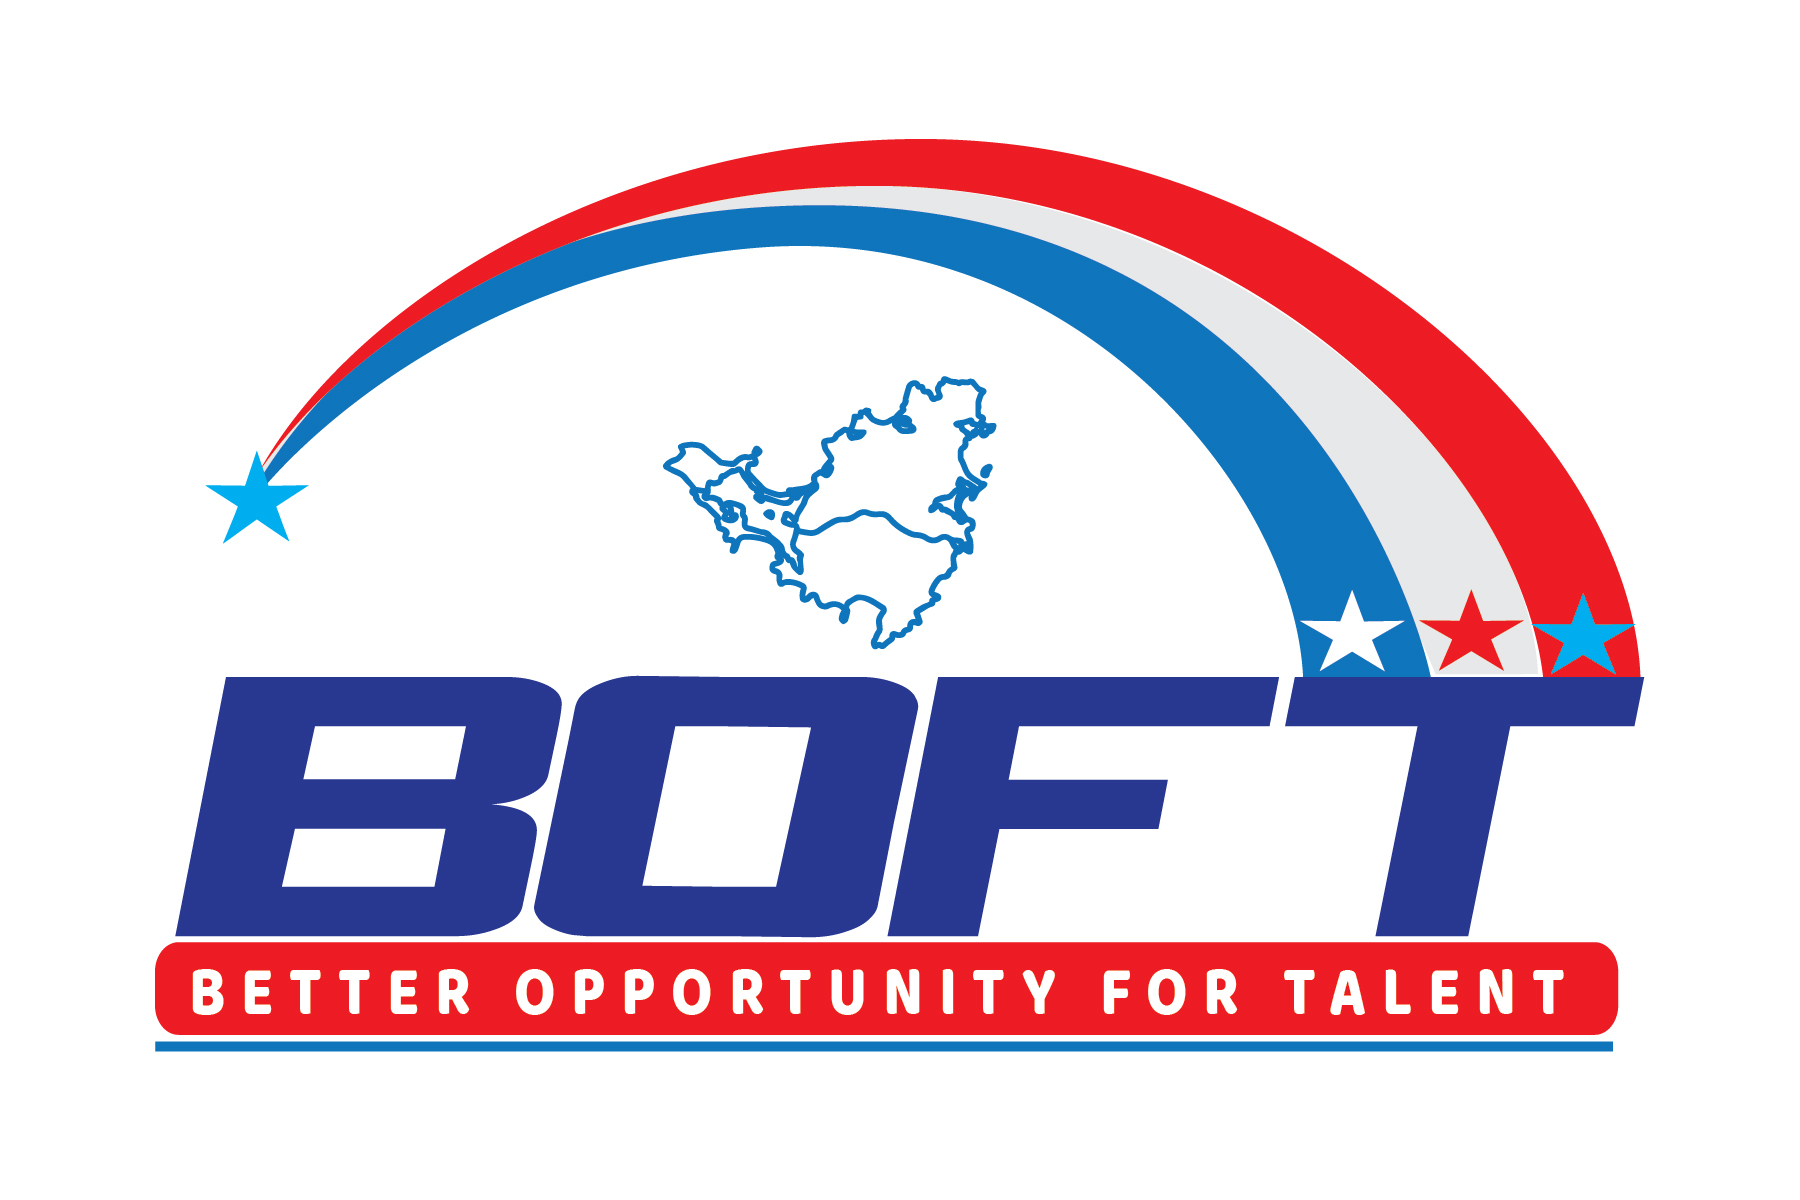 Better Opportunity for Talent